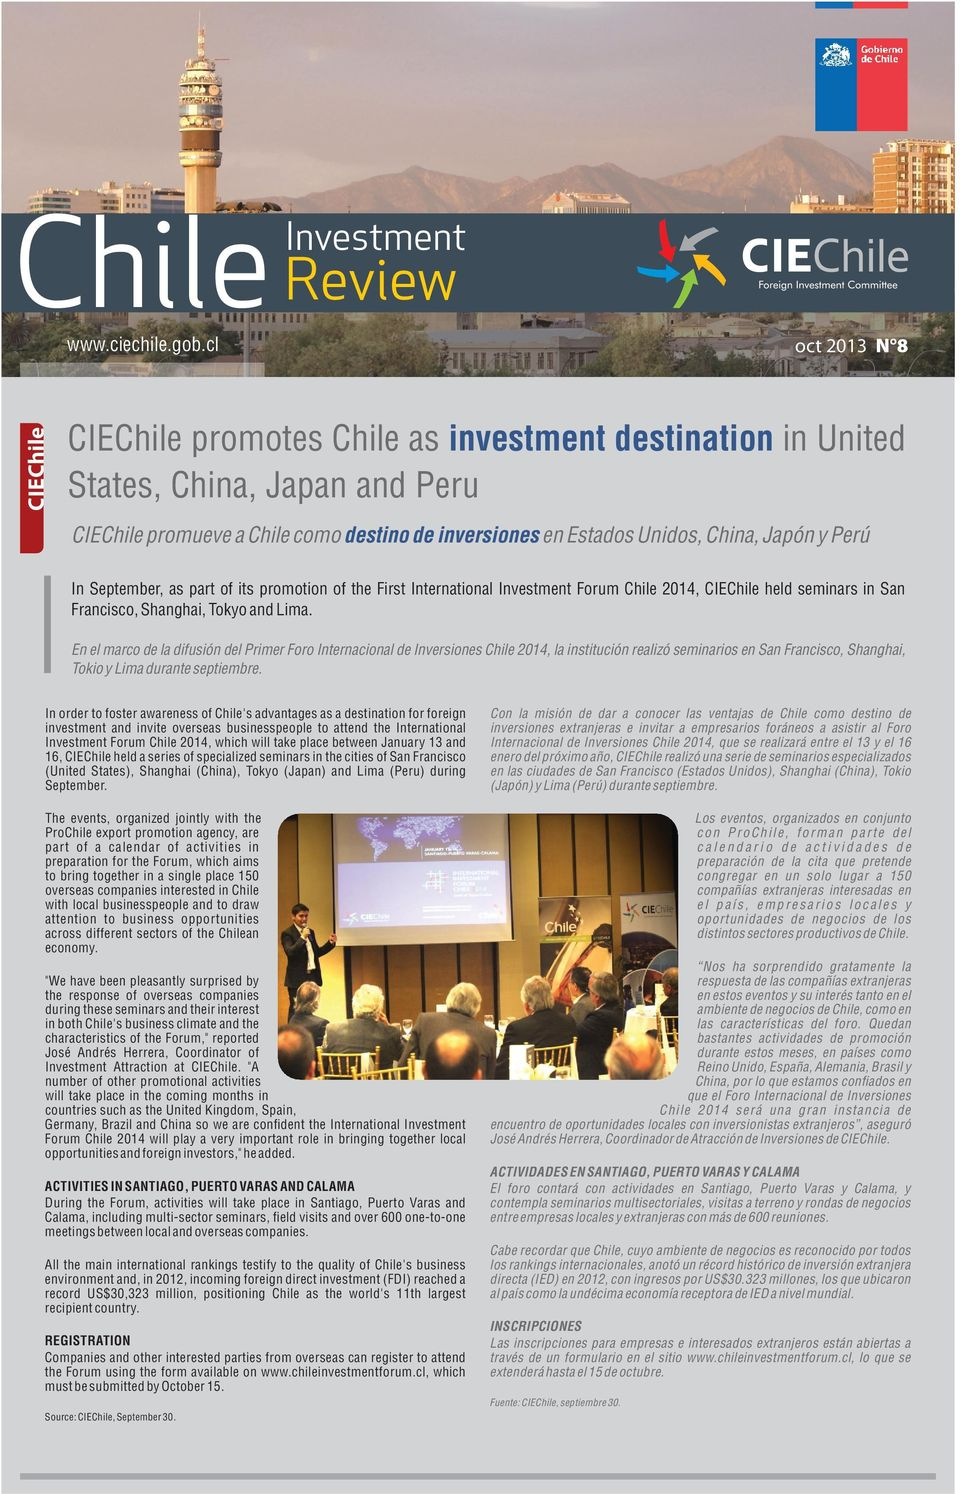 In September, as part of its promotion of the First International Investment Forum Chile 2014, CIEChile held seminars in San Francisco, Shanghai, Tokyo and Lima.